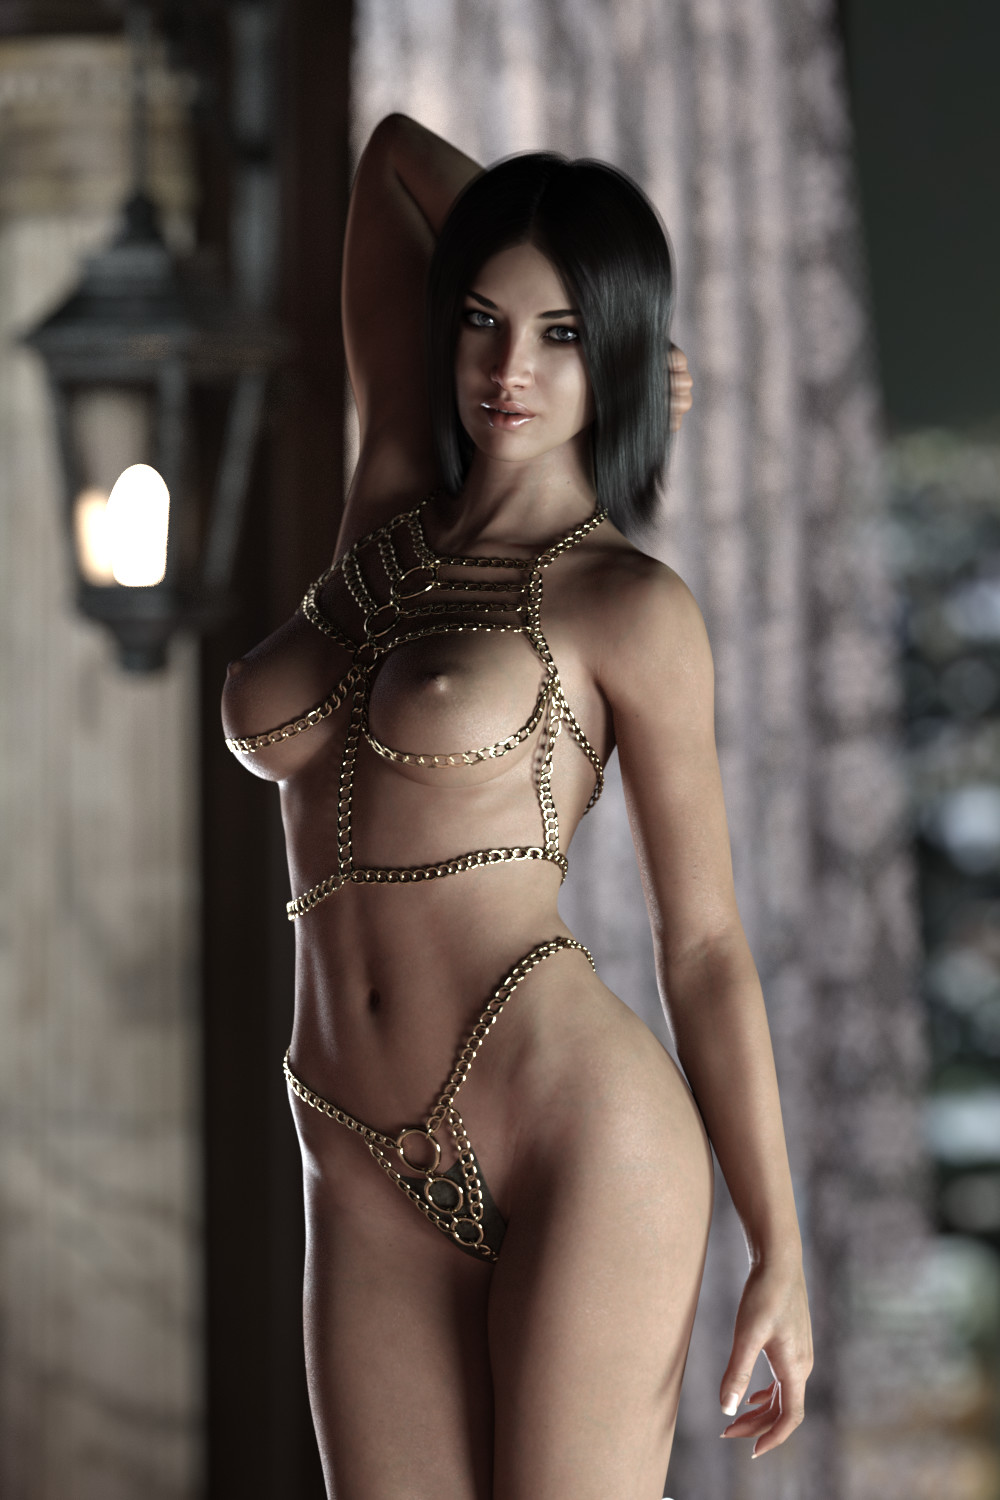 She is cute she fights and again get back together.she will be best wife :)